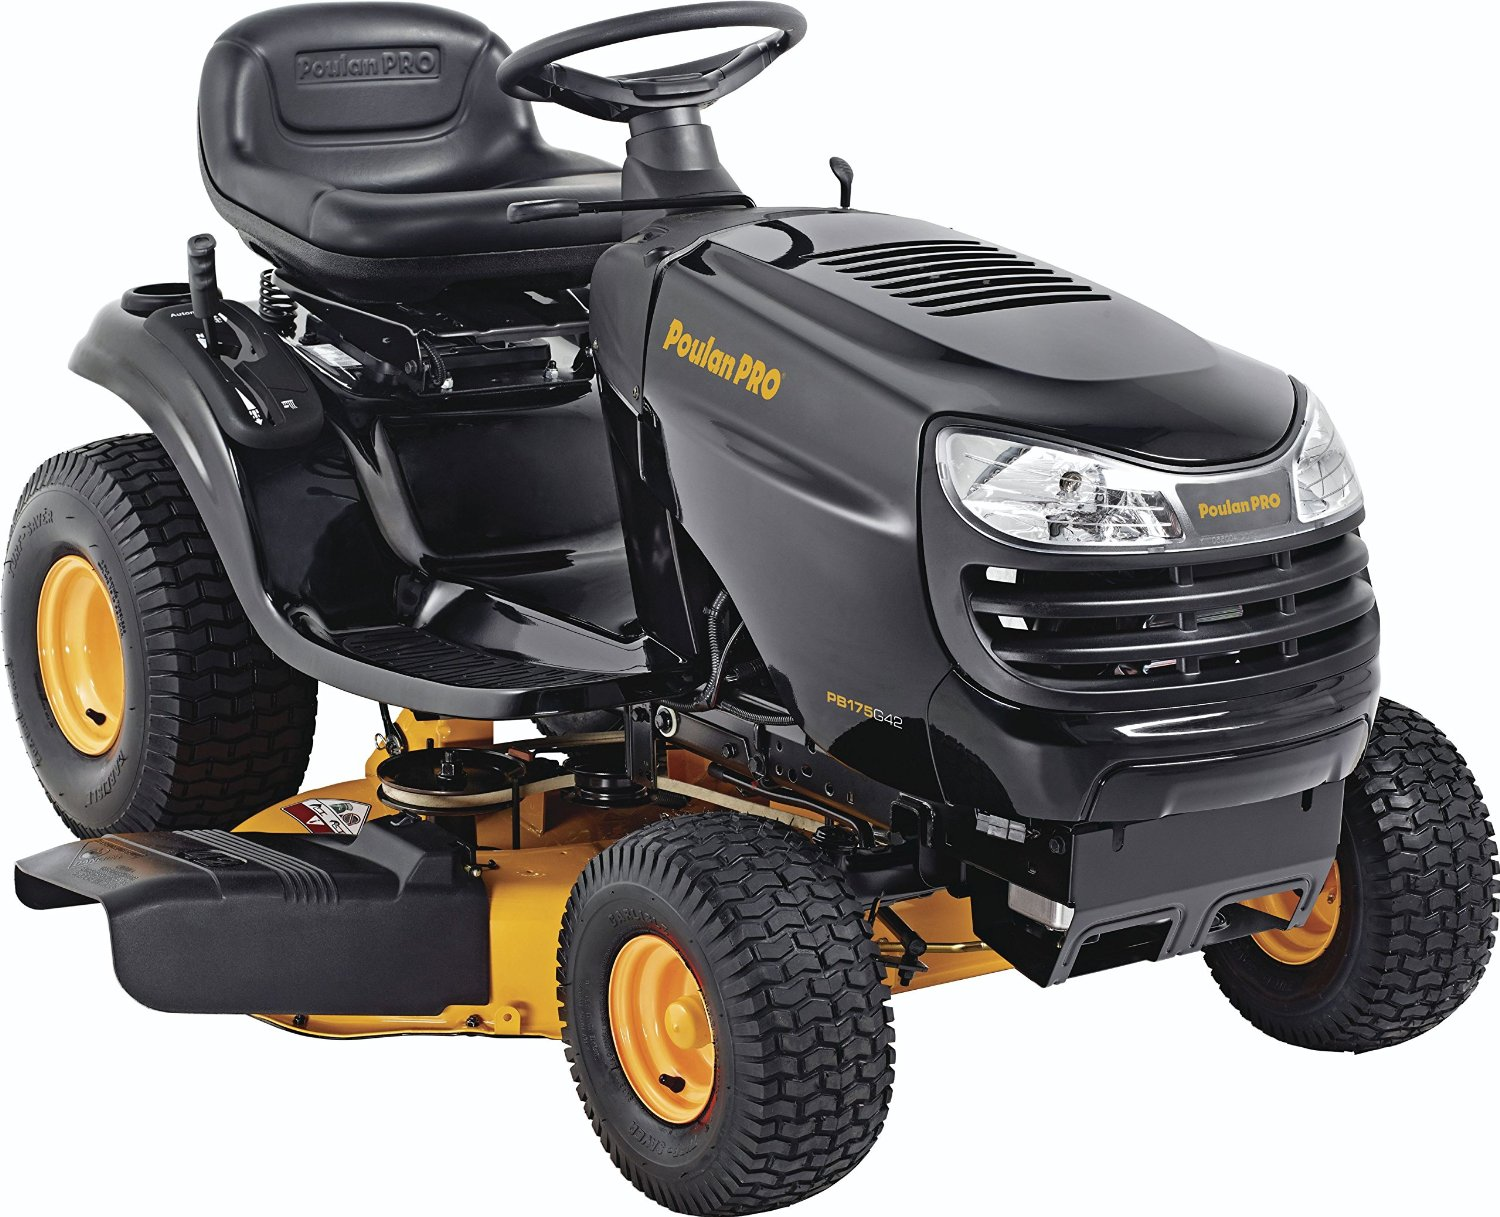 Poulan Pro 960420164 Briggs And Stratton 42 Inch 145 Hp Riding Lawn Mower Wiring Diagram